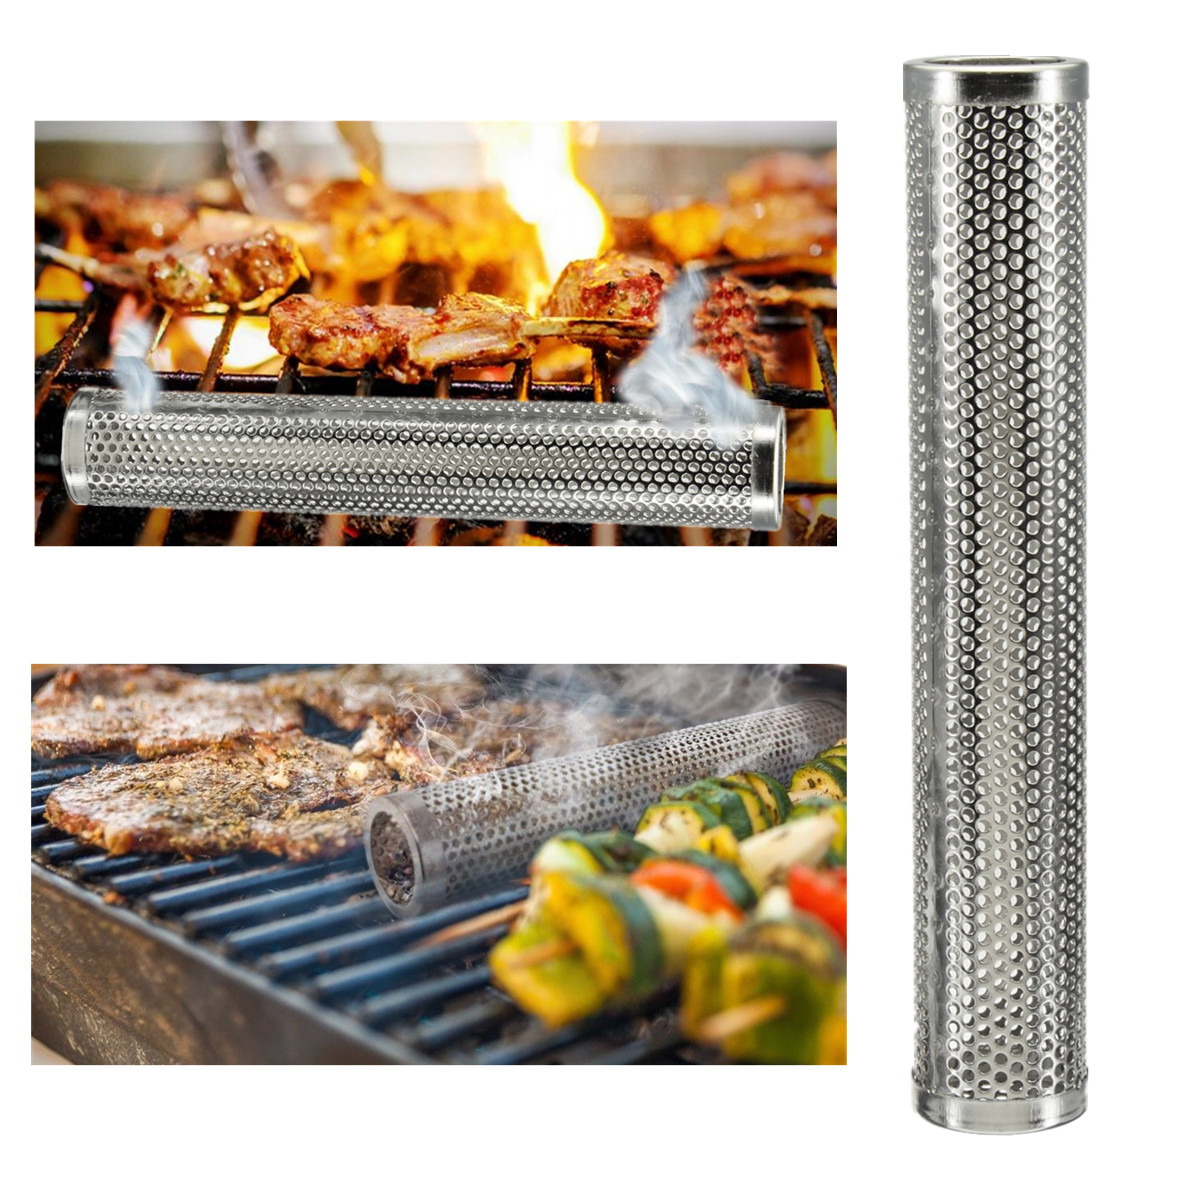 12 Inch Round BBQ Smoker Wood Pellet Grill Hot Cold Smoke Generator Smoking Mesh Tube